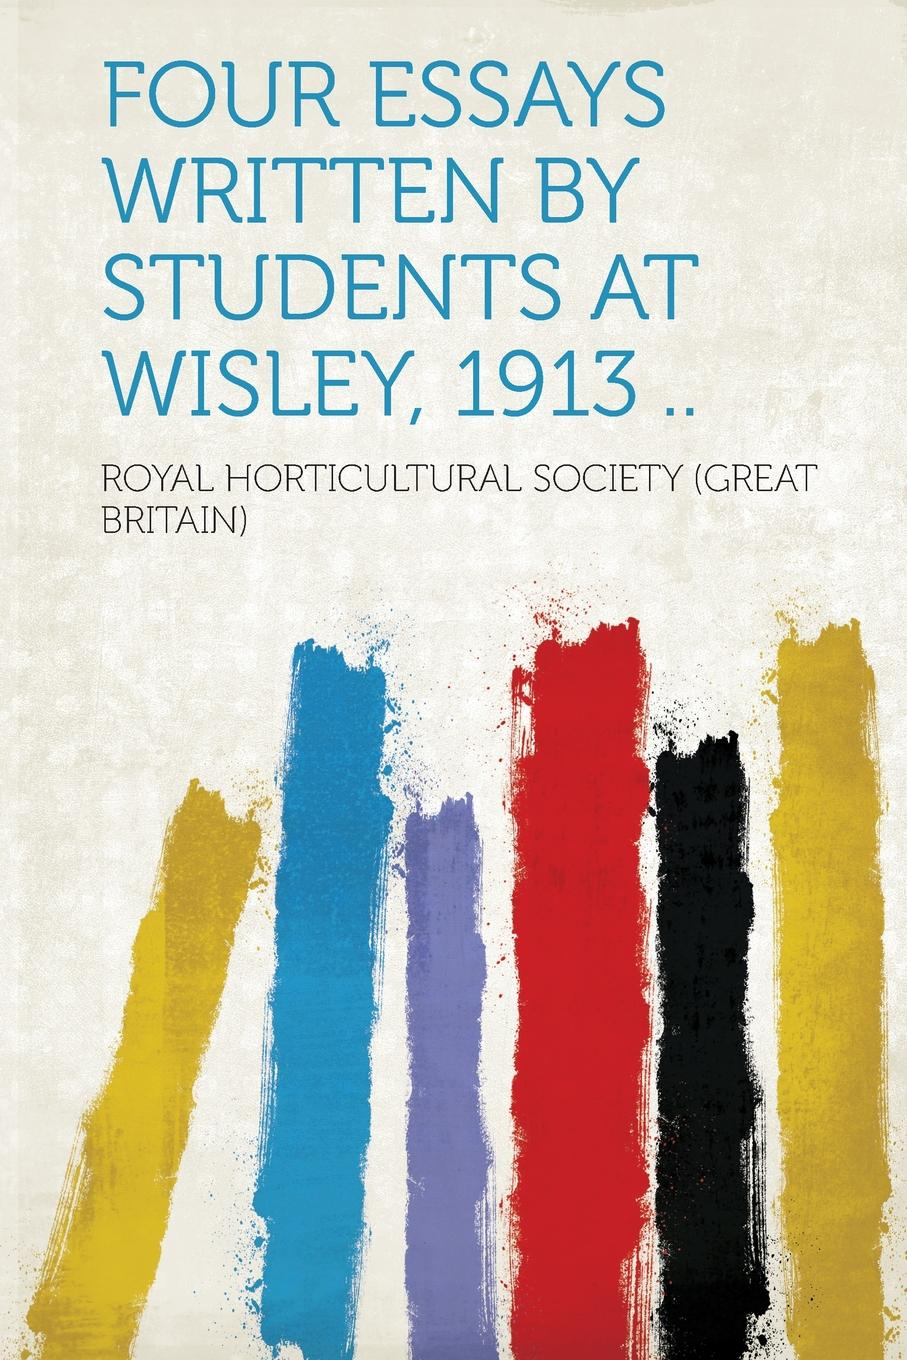 Royal Horticultural Society (G Britain) Four Essays Written by Students at Wisley, 1913 ..